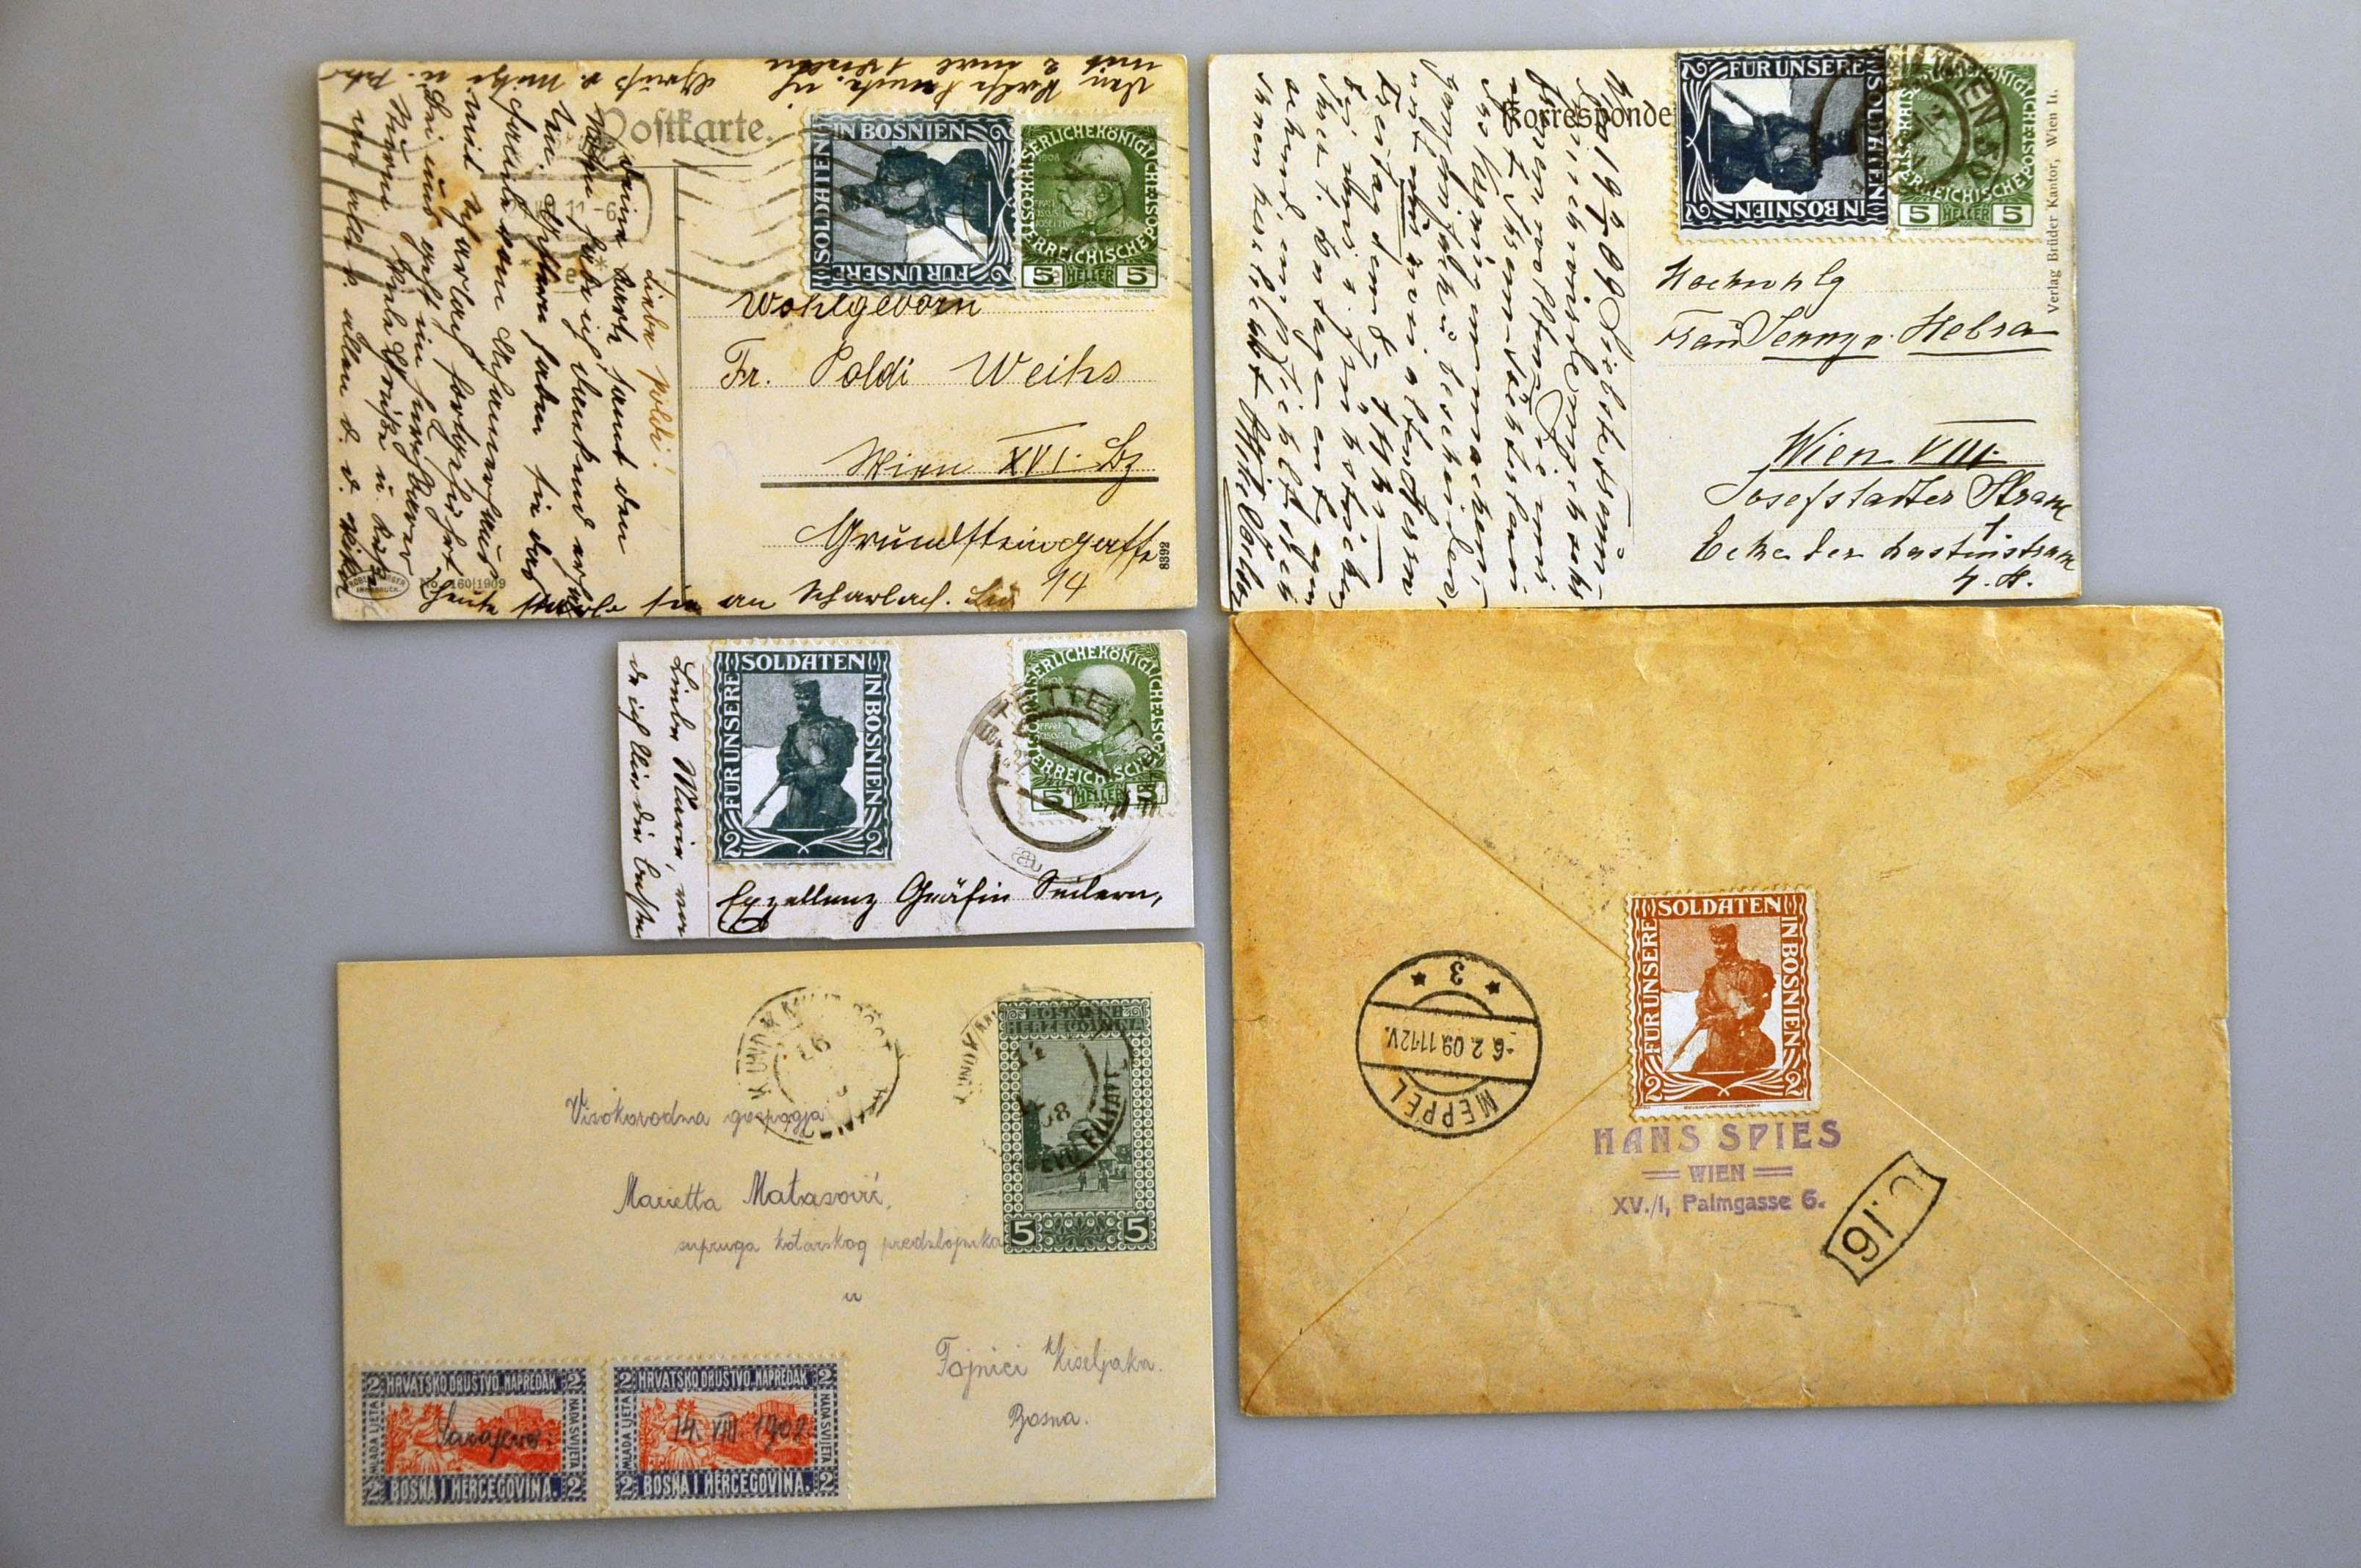 Lot 60 - Austria and former territories Bosnia and Herzegowina (Austrian) -  Corinphila Veilingen Auction 244 -Netherlands and former colonies, WW2 Postal History, Bosnia, German and British colonies, Egypt. - Day 1